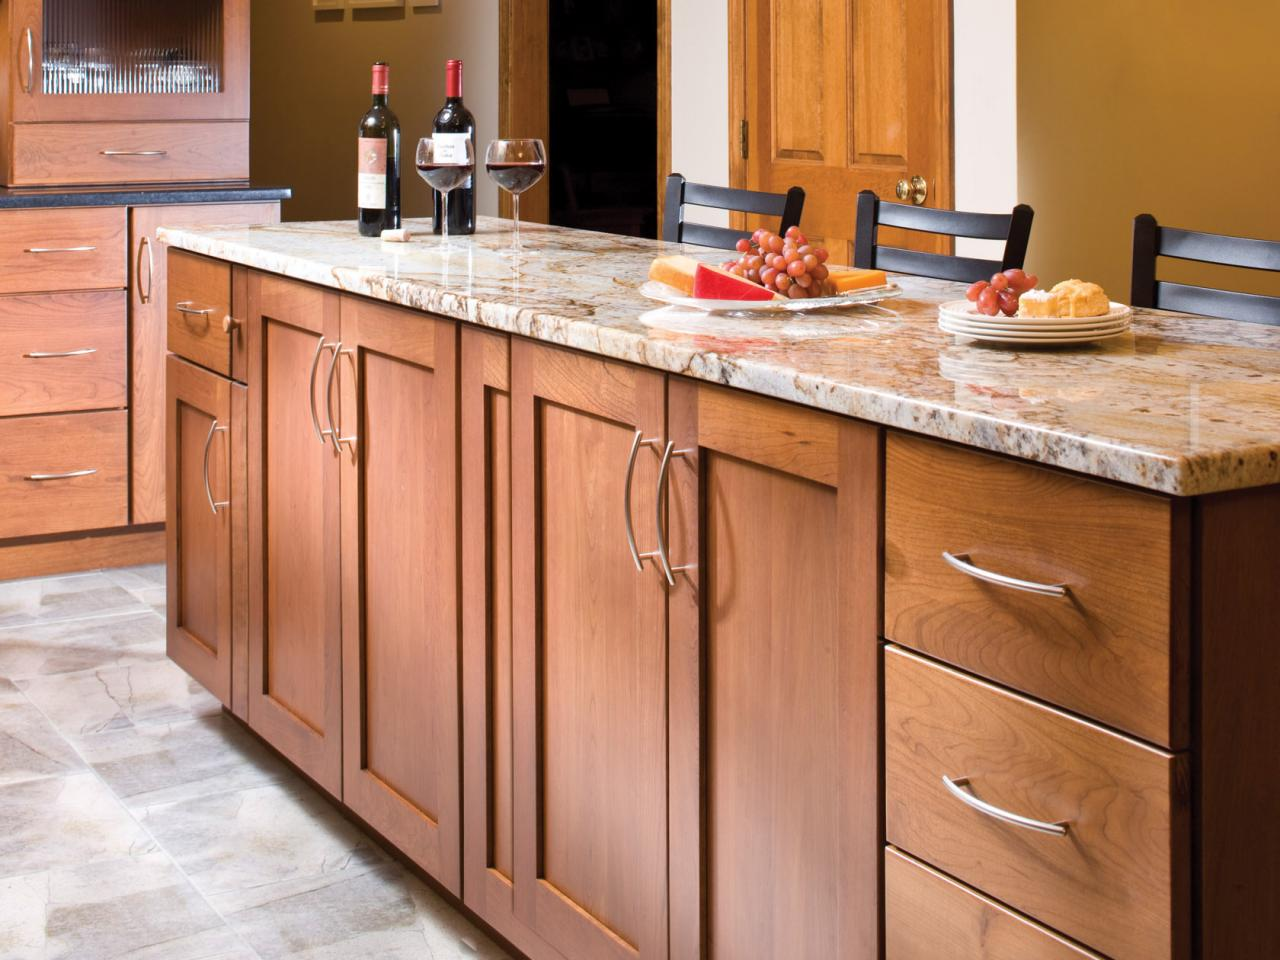 mid range kitchen cabinets red mat cheap versus steep cabinetry designs